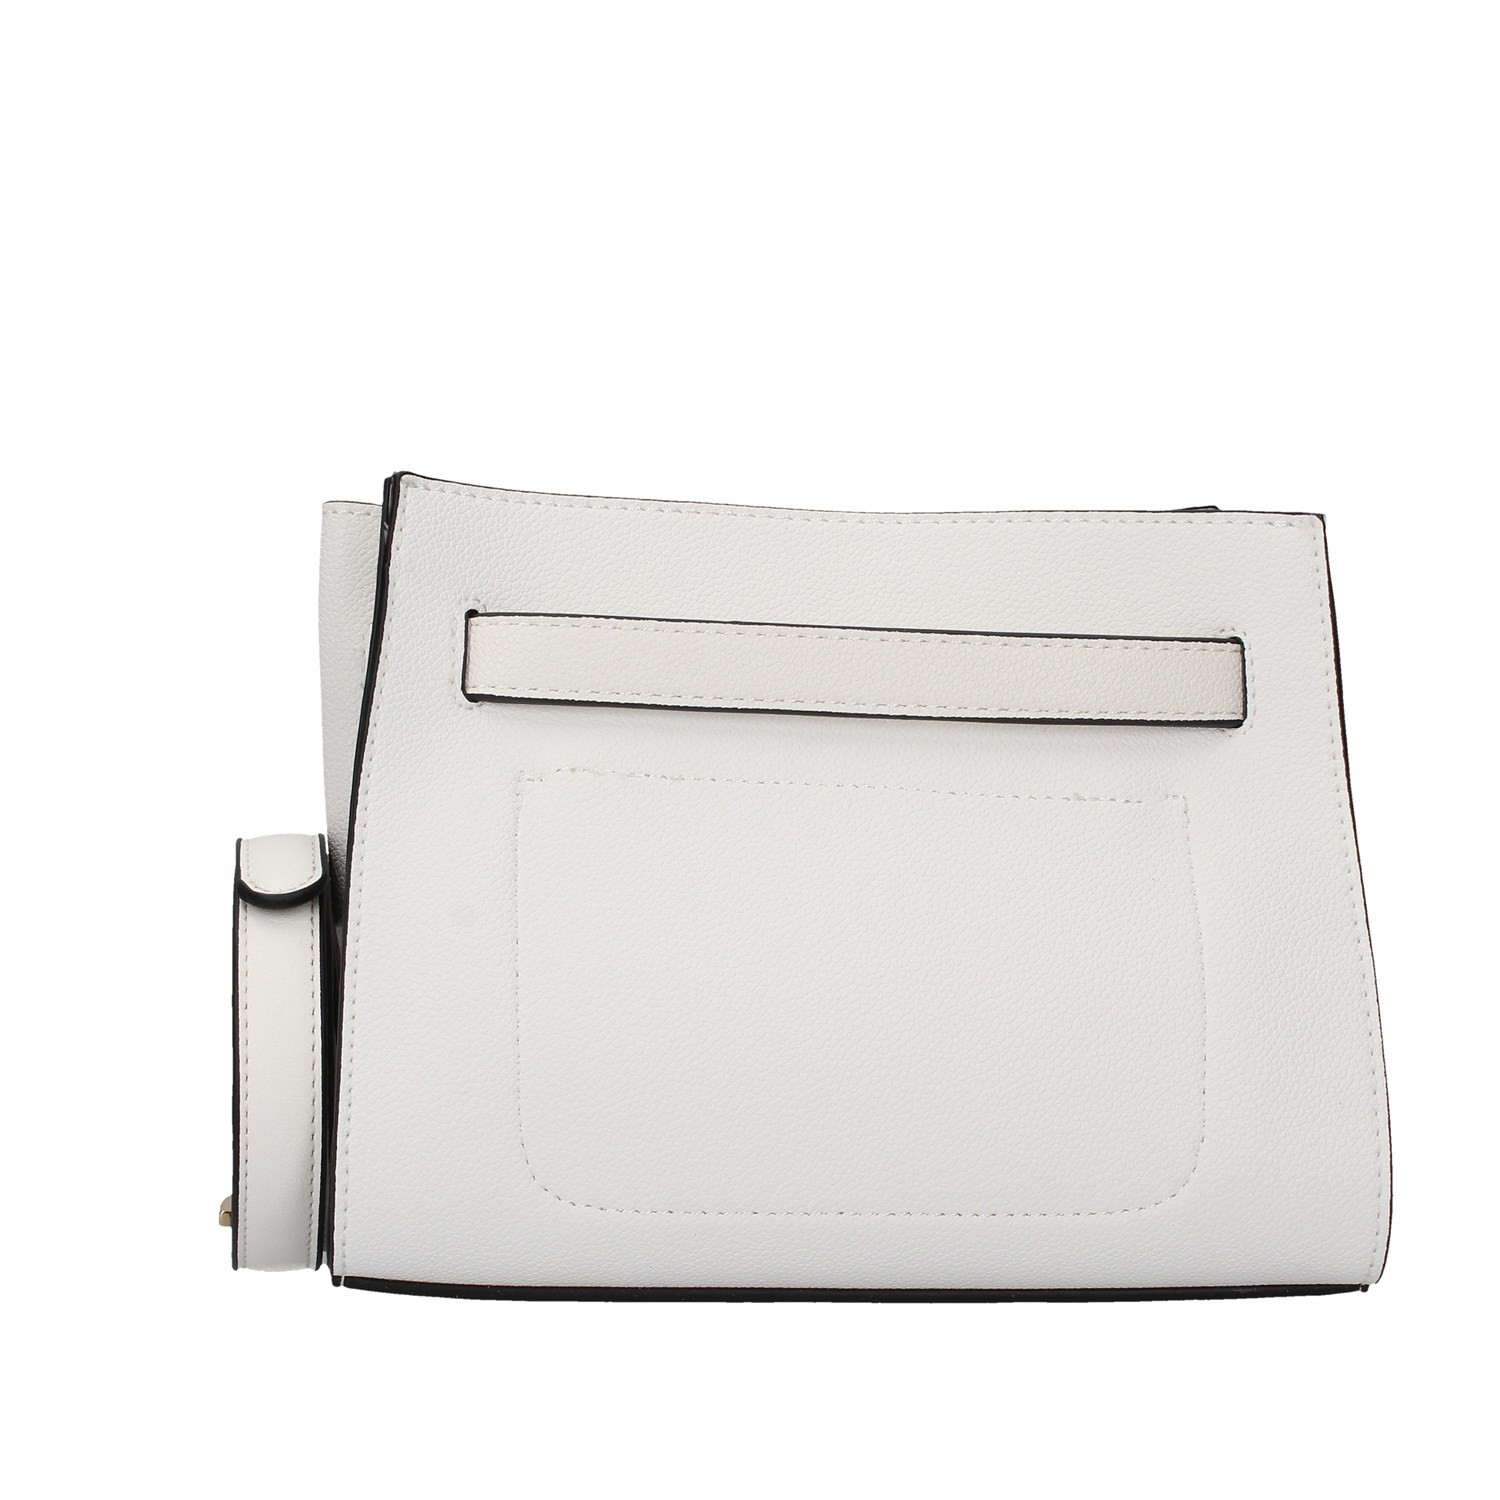 Cafe' Noir Bags Accessories Shoulder Bags WHITE BX832